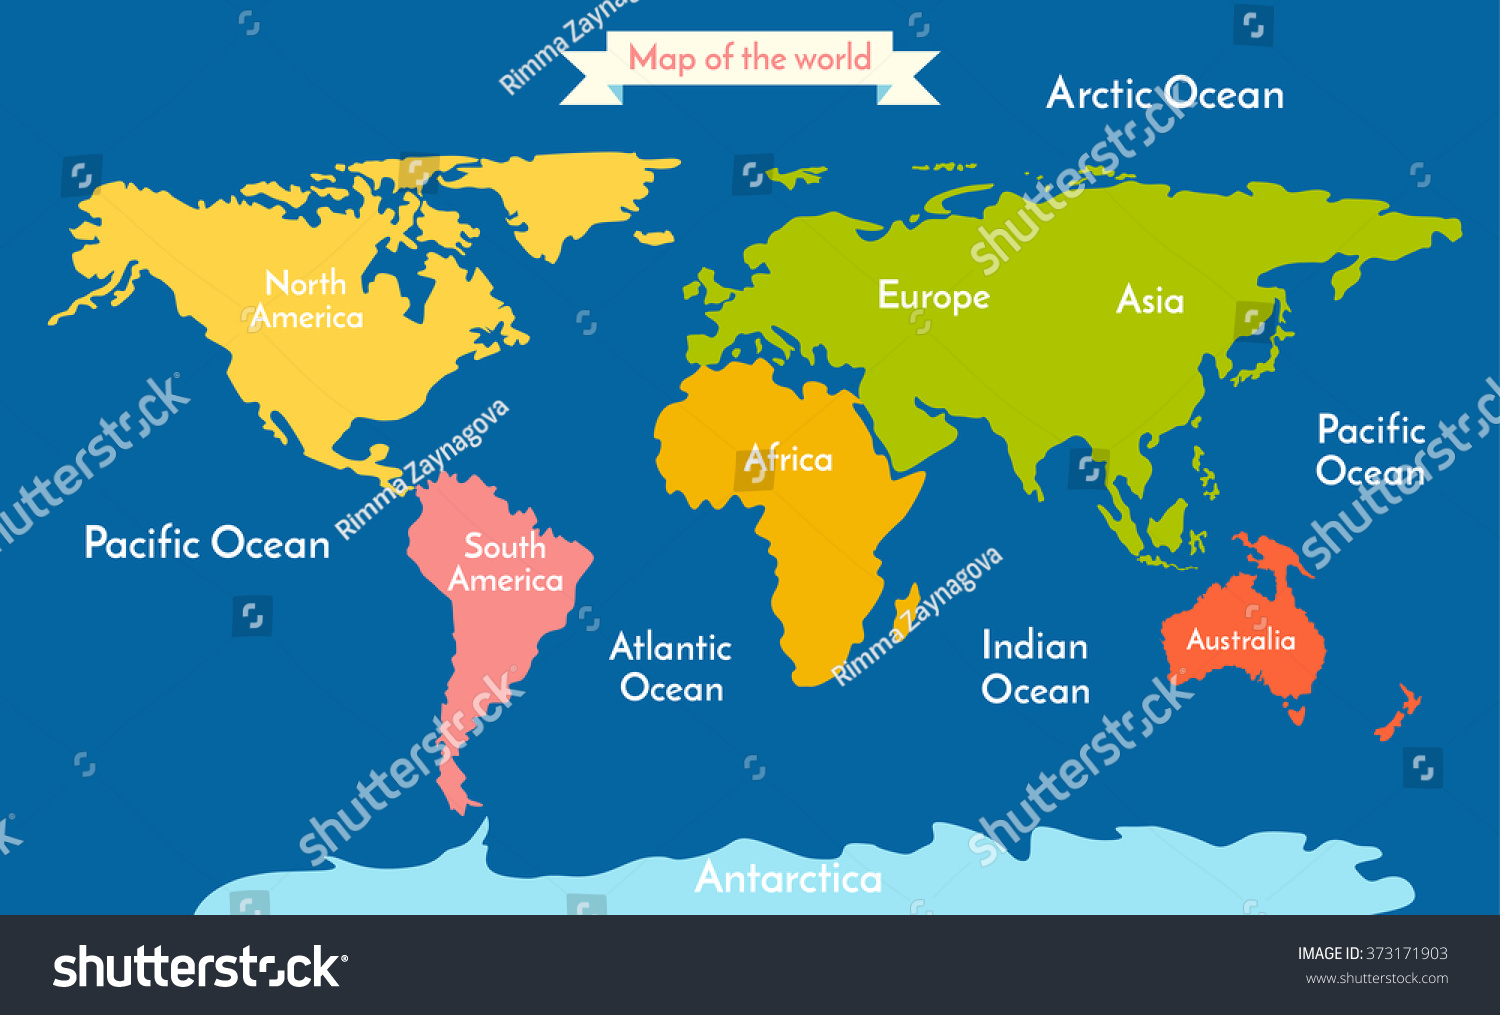 World map vector illustration inscription oceans vectores en stock world map vector illustration with the inscription of the oceans and continents continents different gumiabroncs Gallery